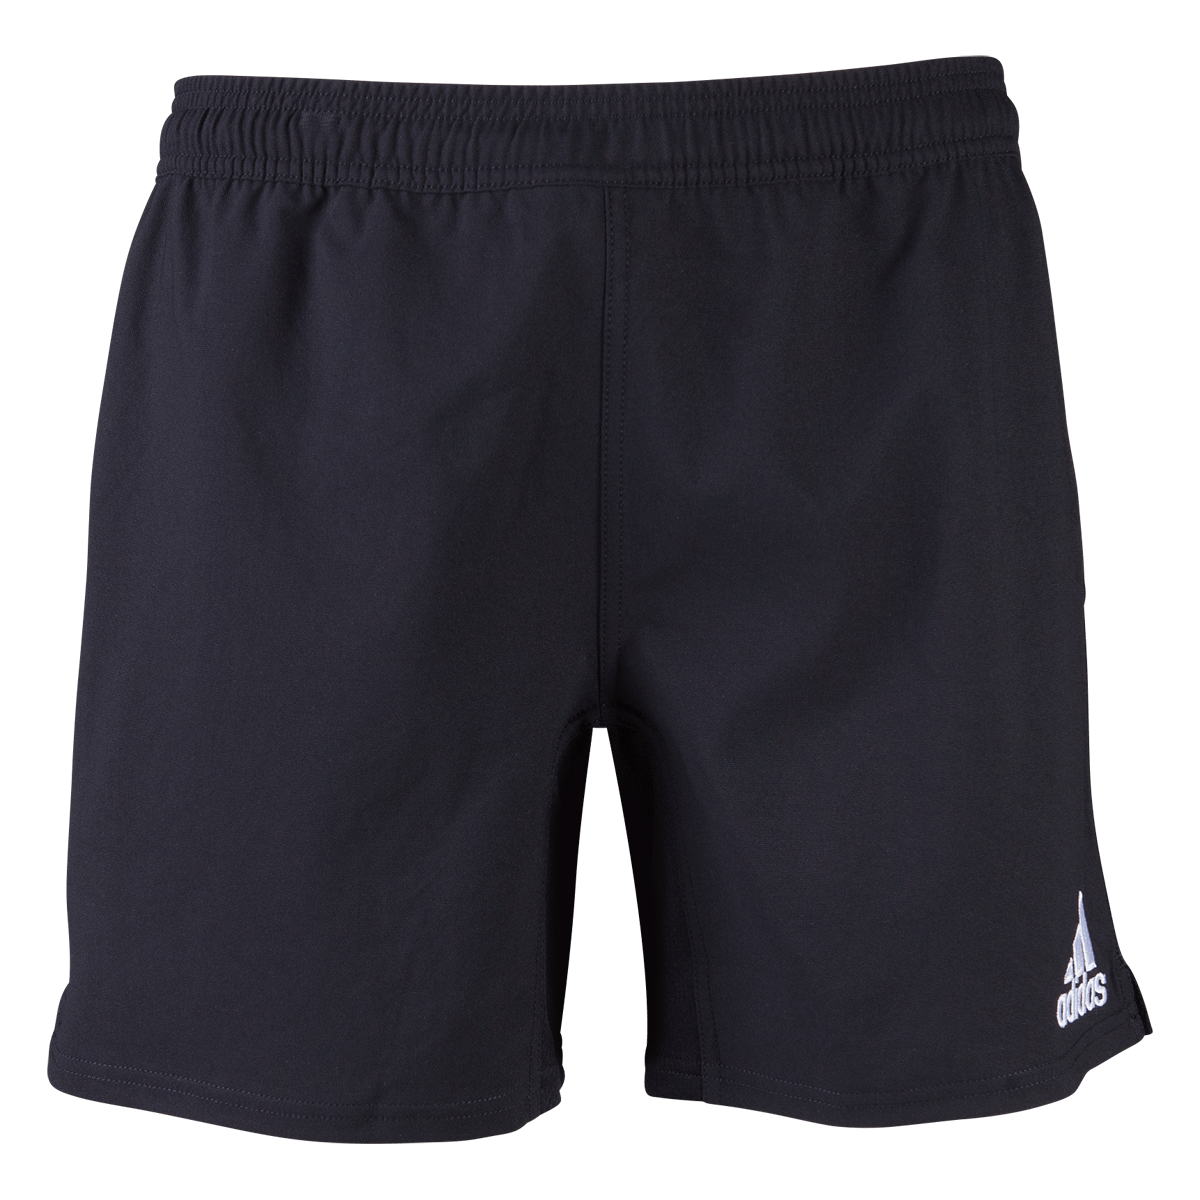 Black Adidas Youth Shorts Front View